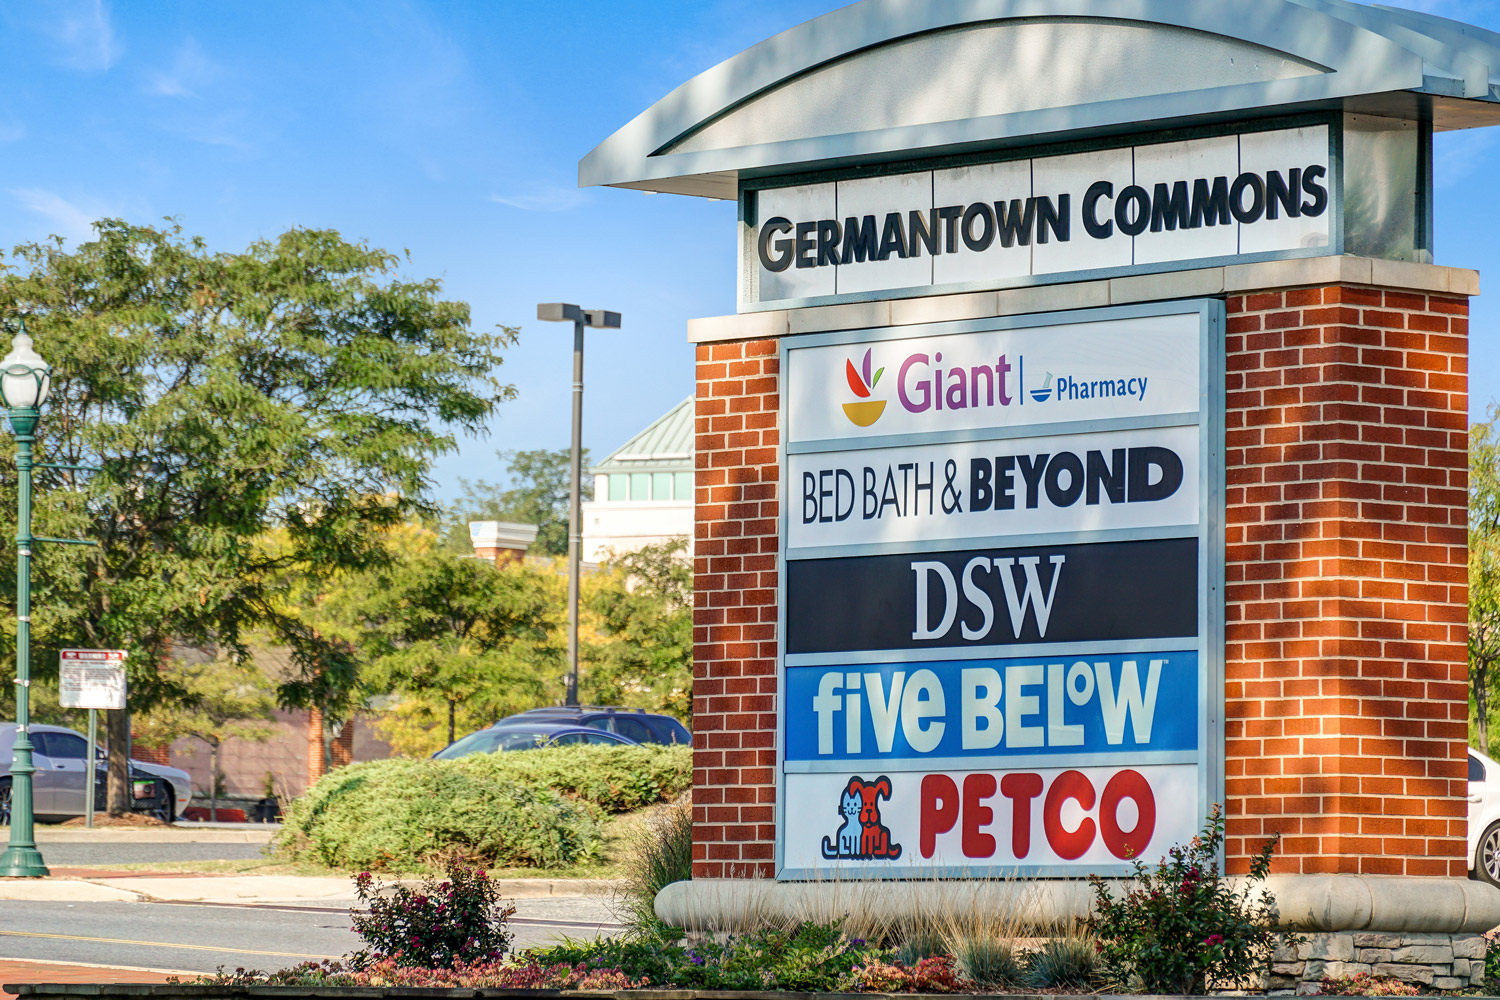 5 minutes to shopping at Germantown Commons in Germantown, MD